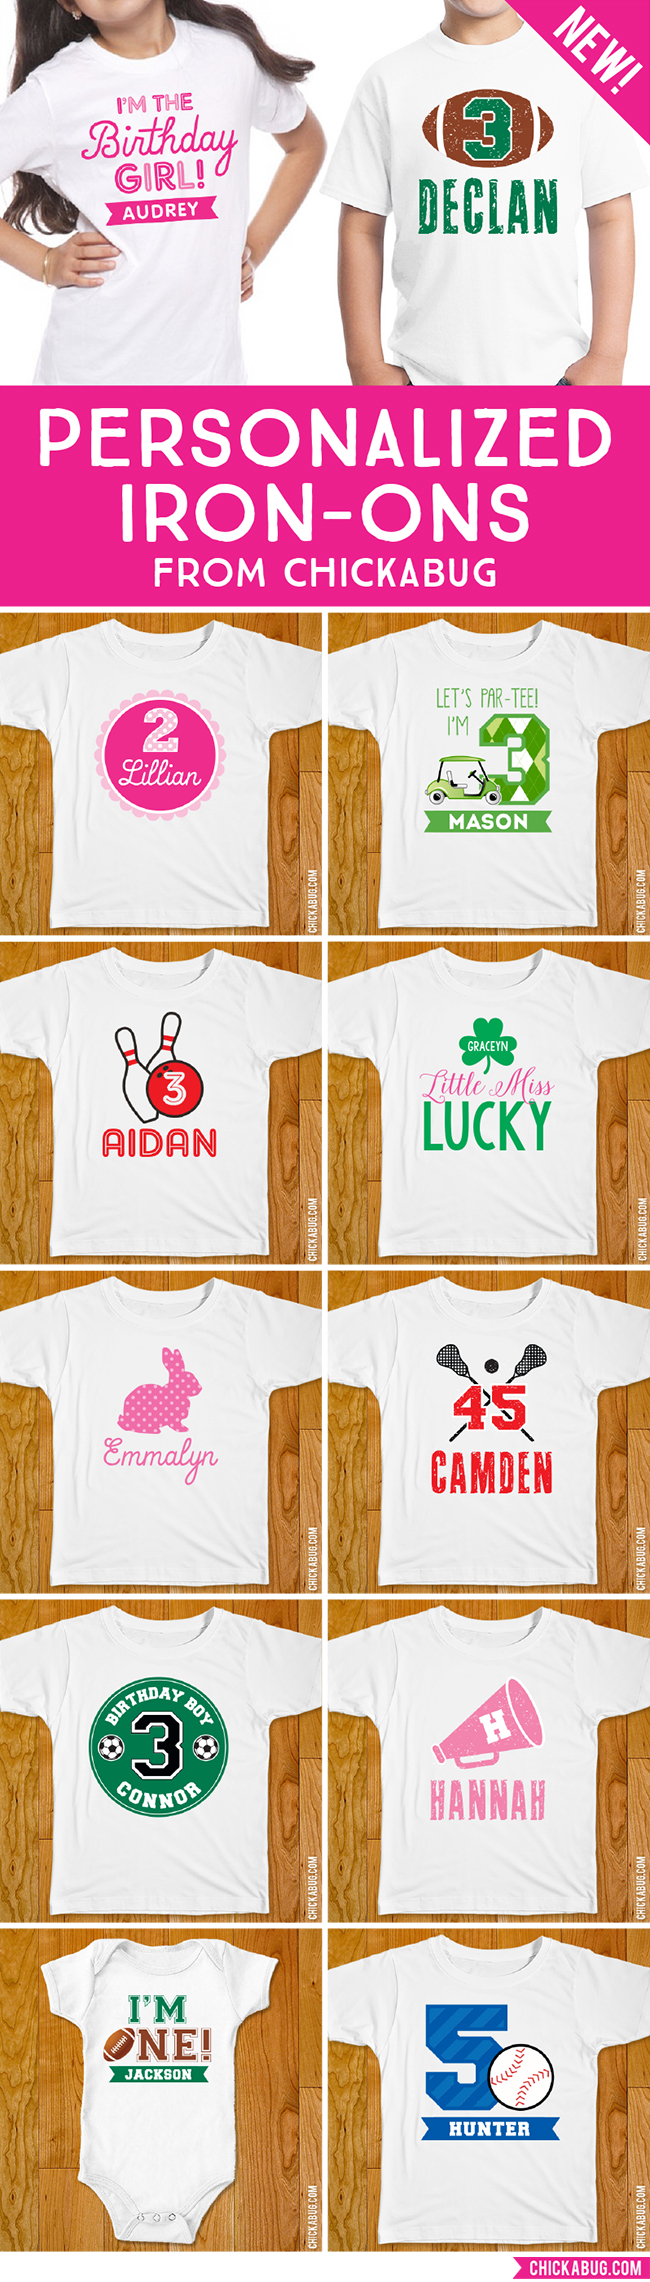 Personalized iron-on shirt designs for birthdays, holidays, sports teams, and more! At Chickabug.com :)